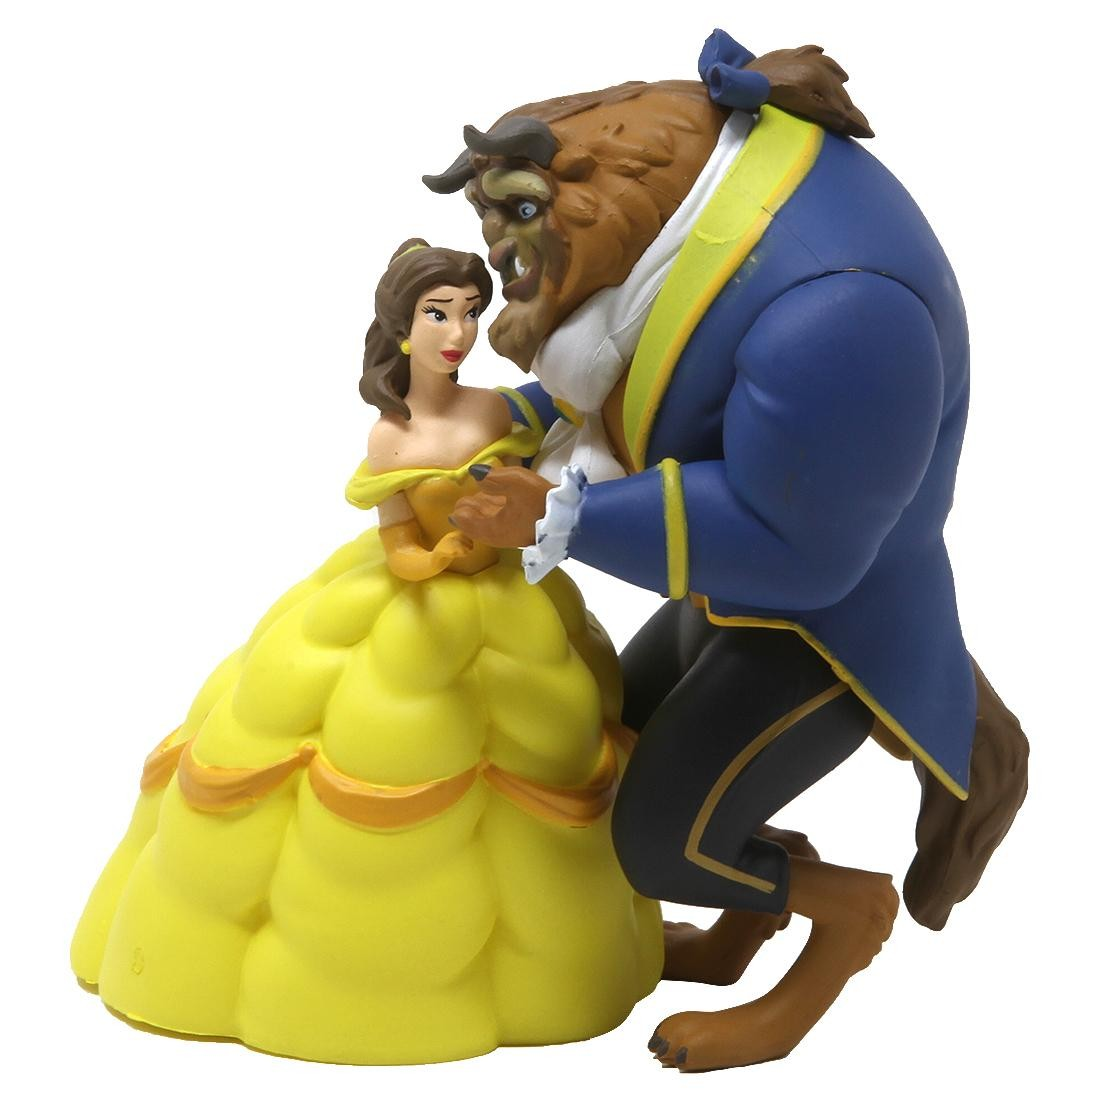 Medicom UDF Disney Series 7 Beauty And The Beast Belle And Beast Ultra Detail Figure (yellow)